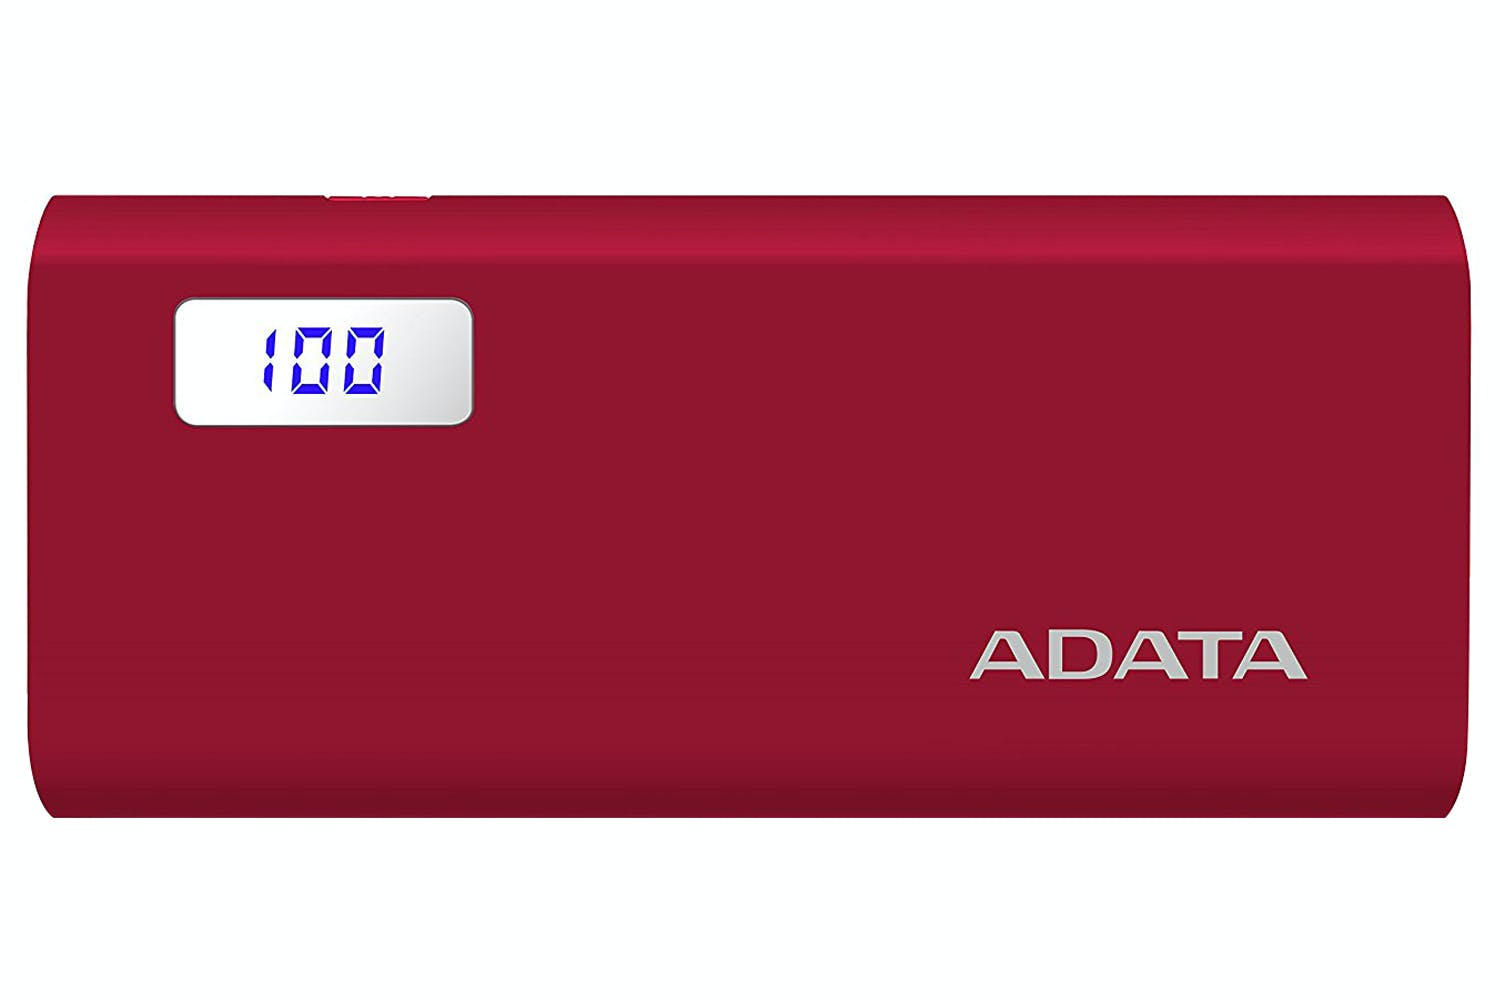 ADATA P12500D Power Bank | Red